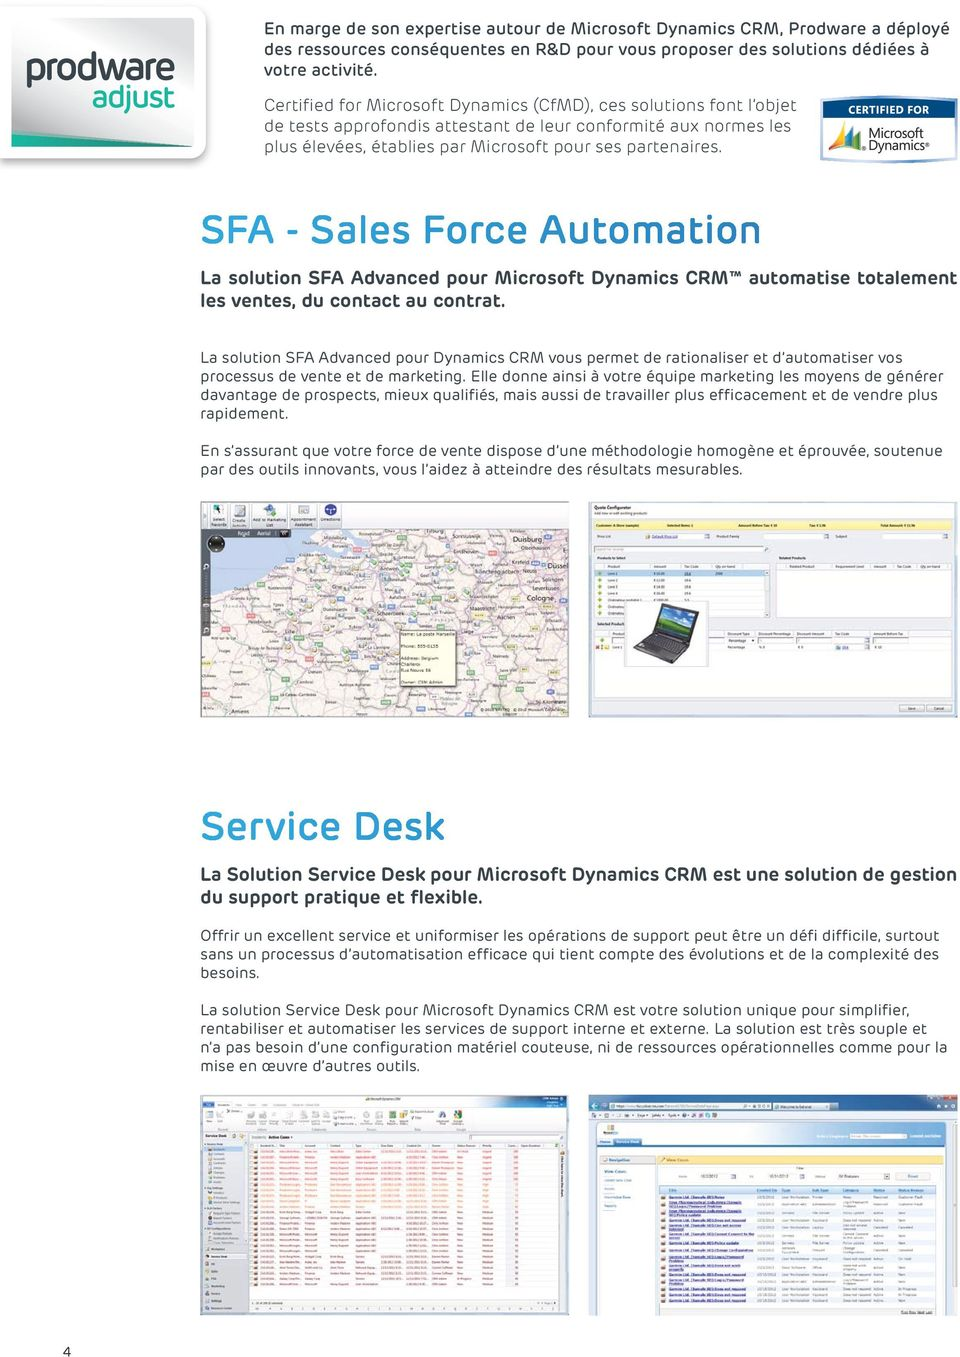 SFA - Sales Force Automation La solution SFA Advanced pour Microsoft Dynamics CRM automatise totalement les ventes, du contact au contrat.